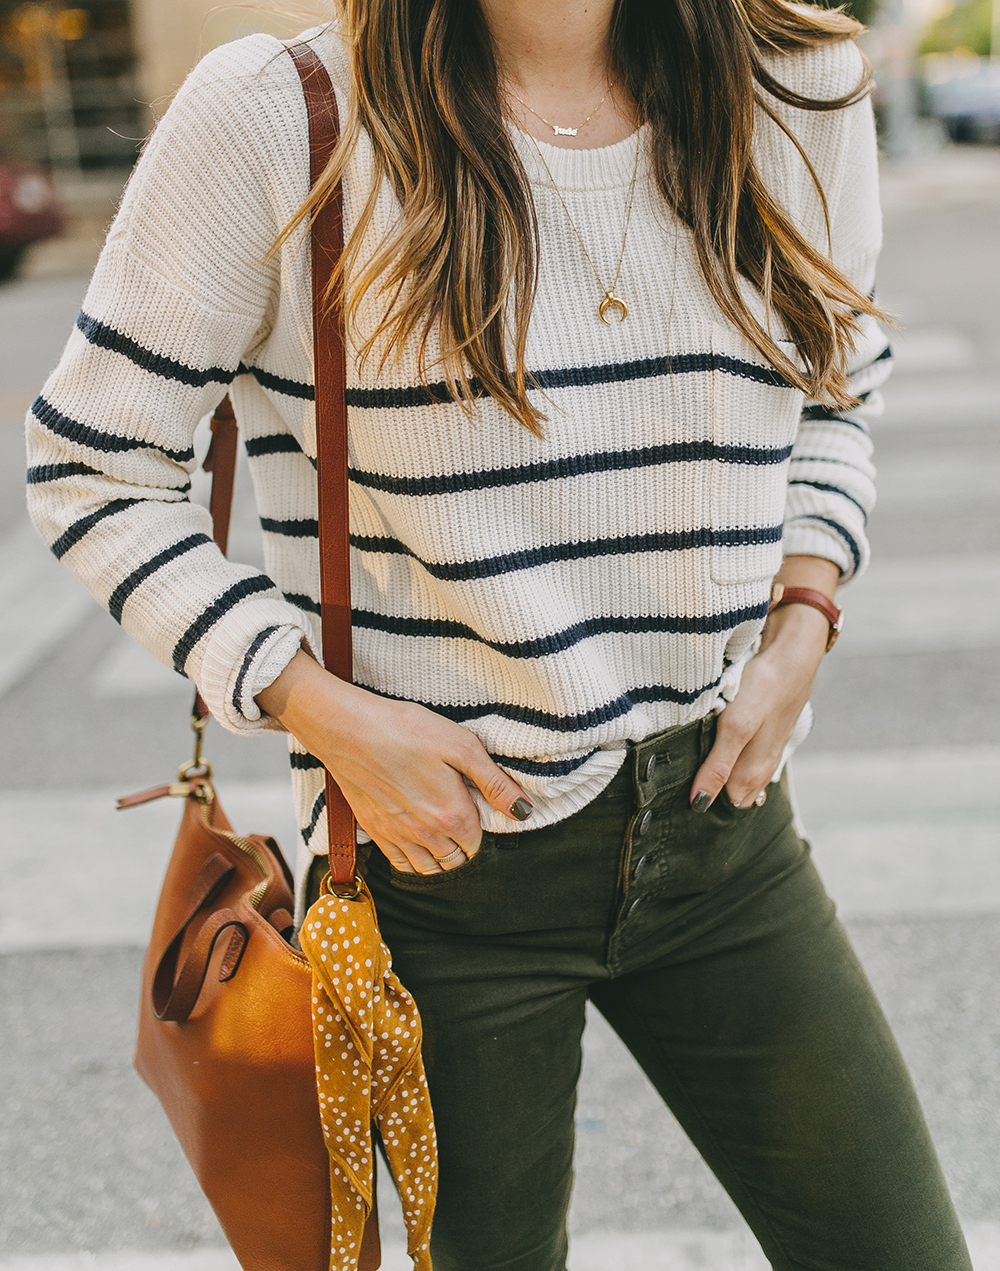 livvyland-blog-olivia-watson-austin-texas-fashion-lifestyle-blogger-madewell-olive-skinny-jeans-striped-sweater-trunk-club-review-5